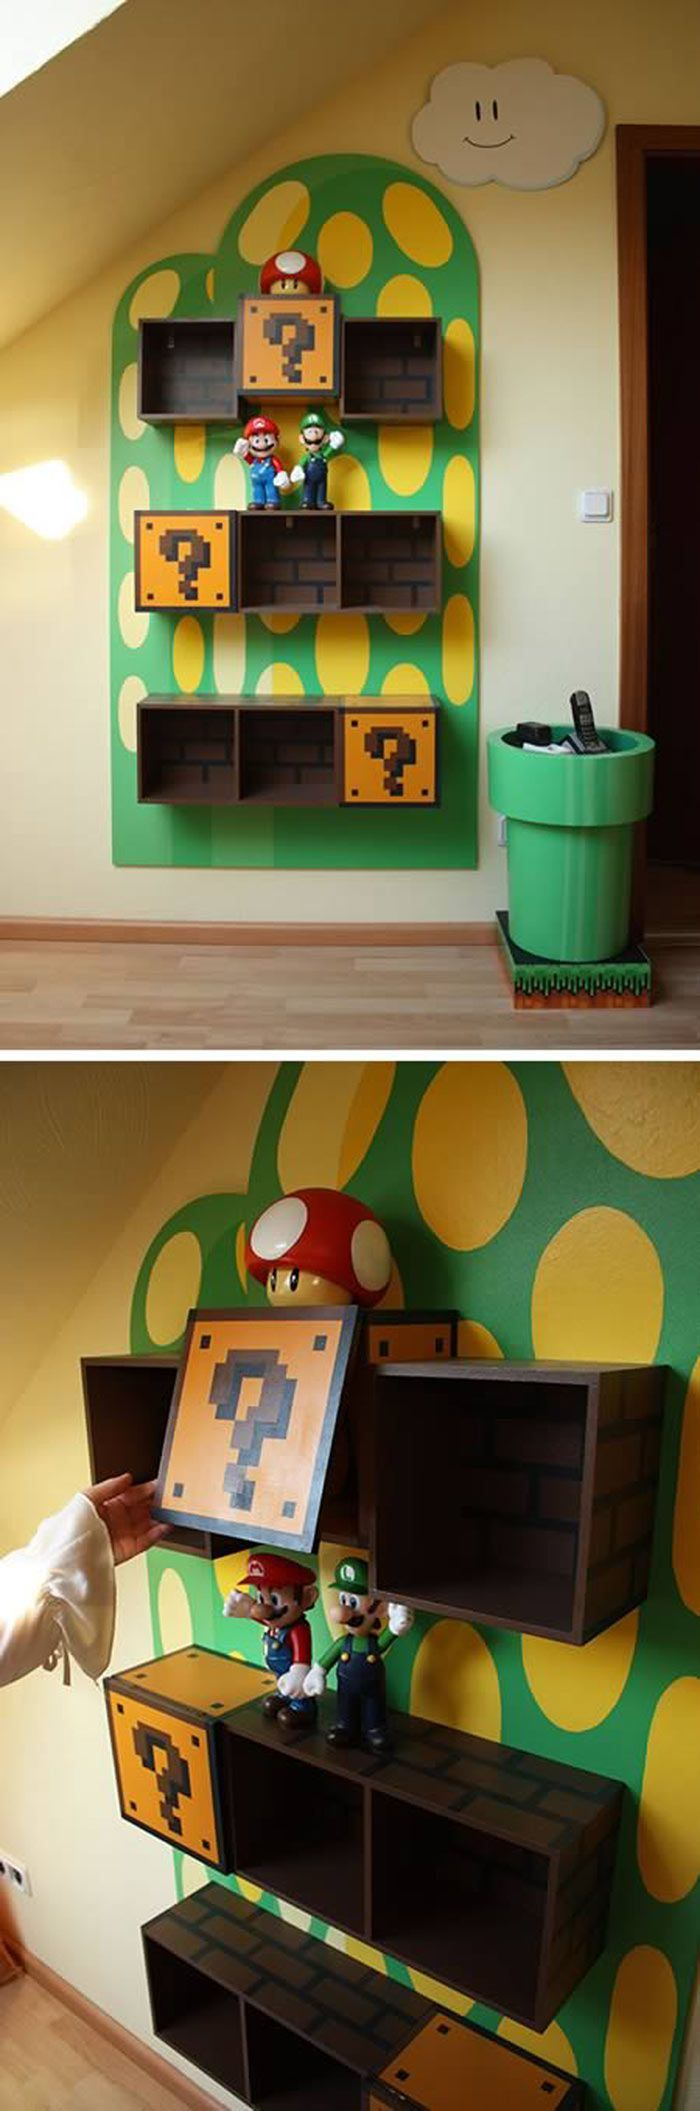 images home net decor ideas geeky surripui geek astonishing room